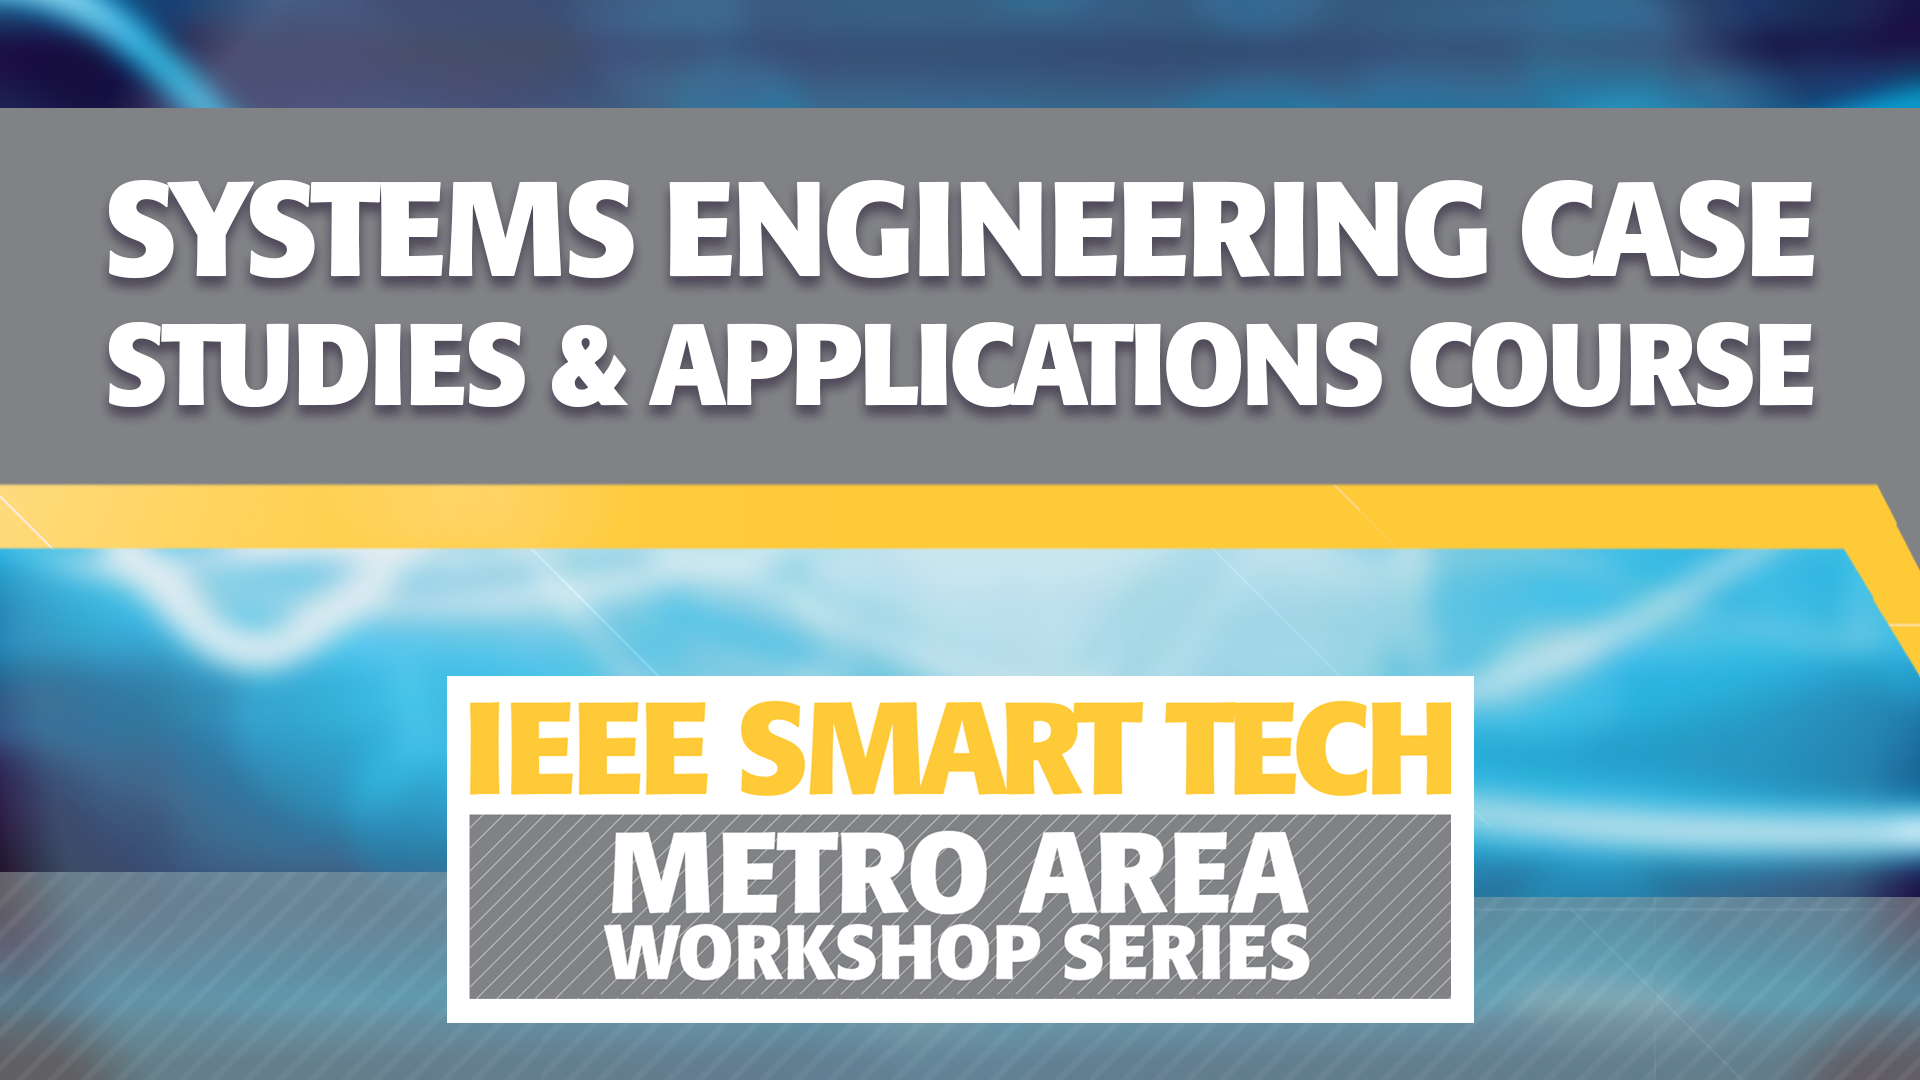 IEEE Smart Tech System Engineering